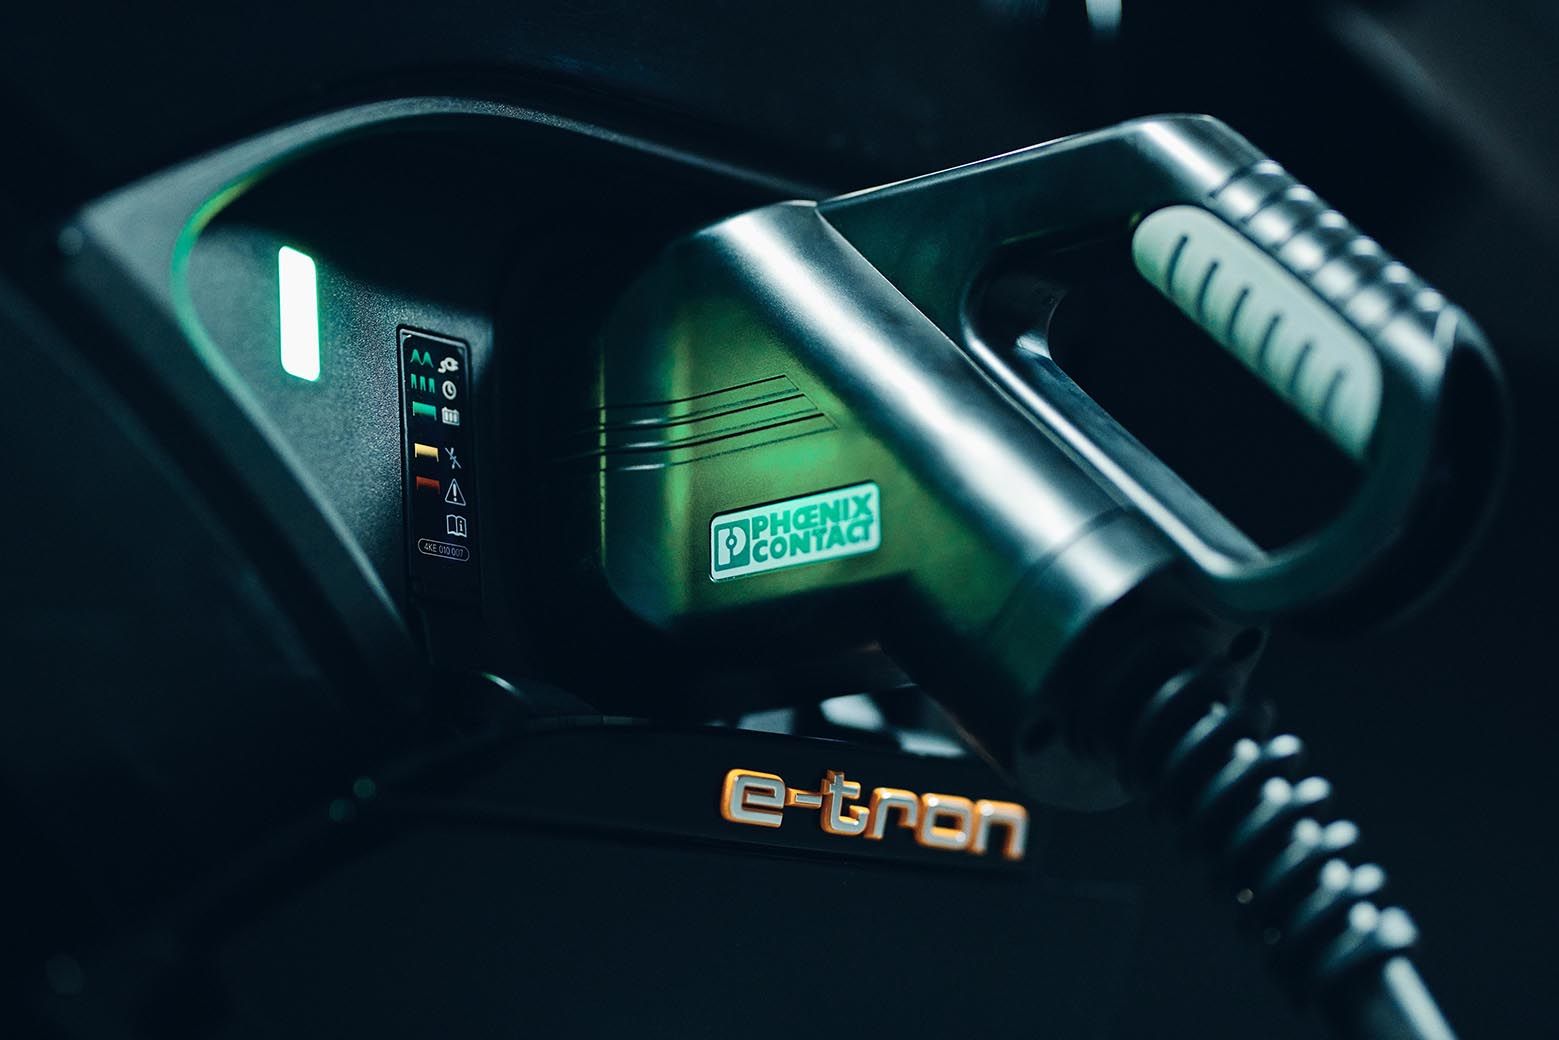 Electric cars as part of the energy transition